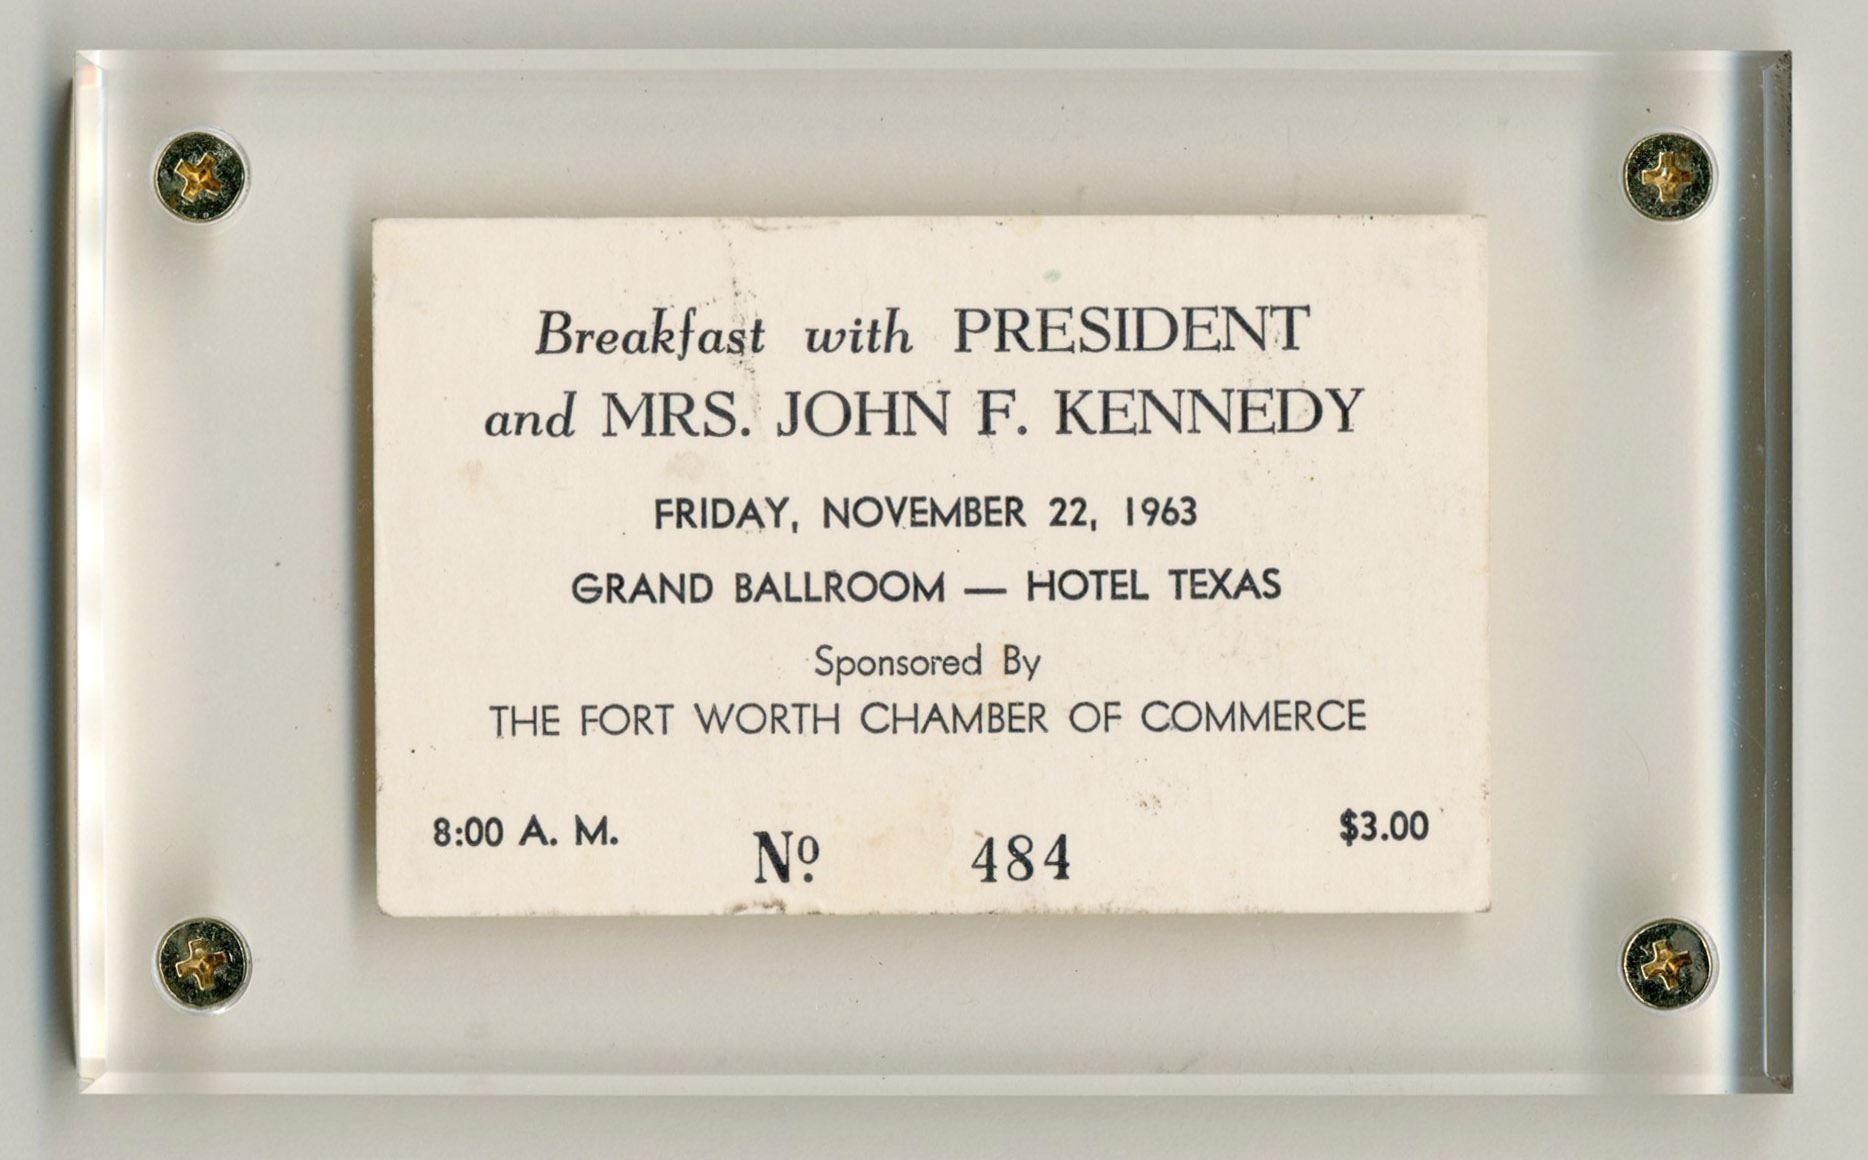 JFK Assassination Day Ticket to Fort Worth Chamber of Commerce Breakfast, Beautifully Presented